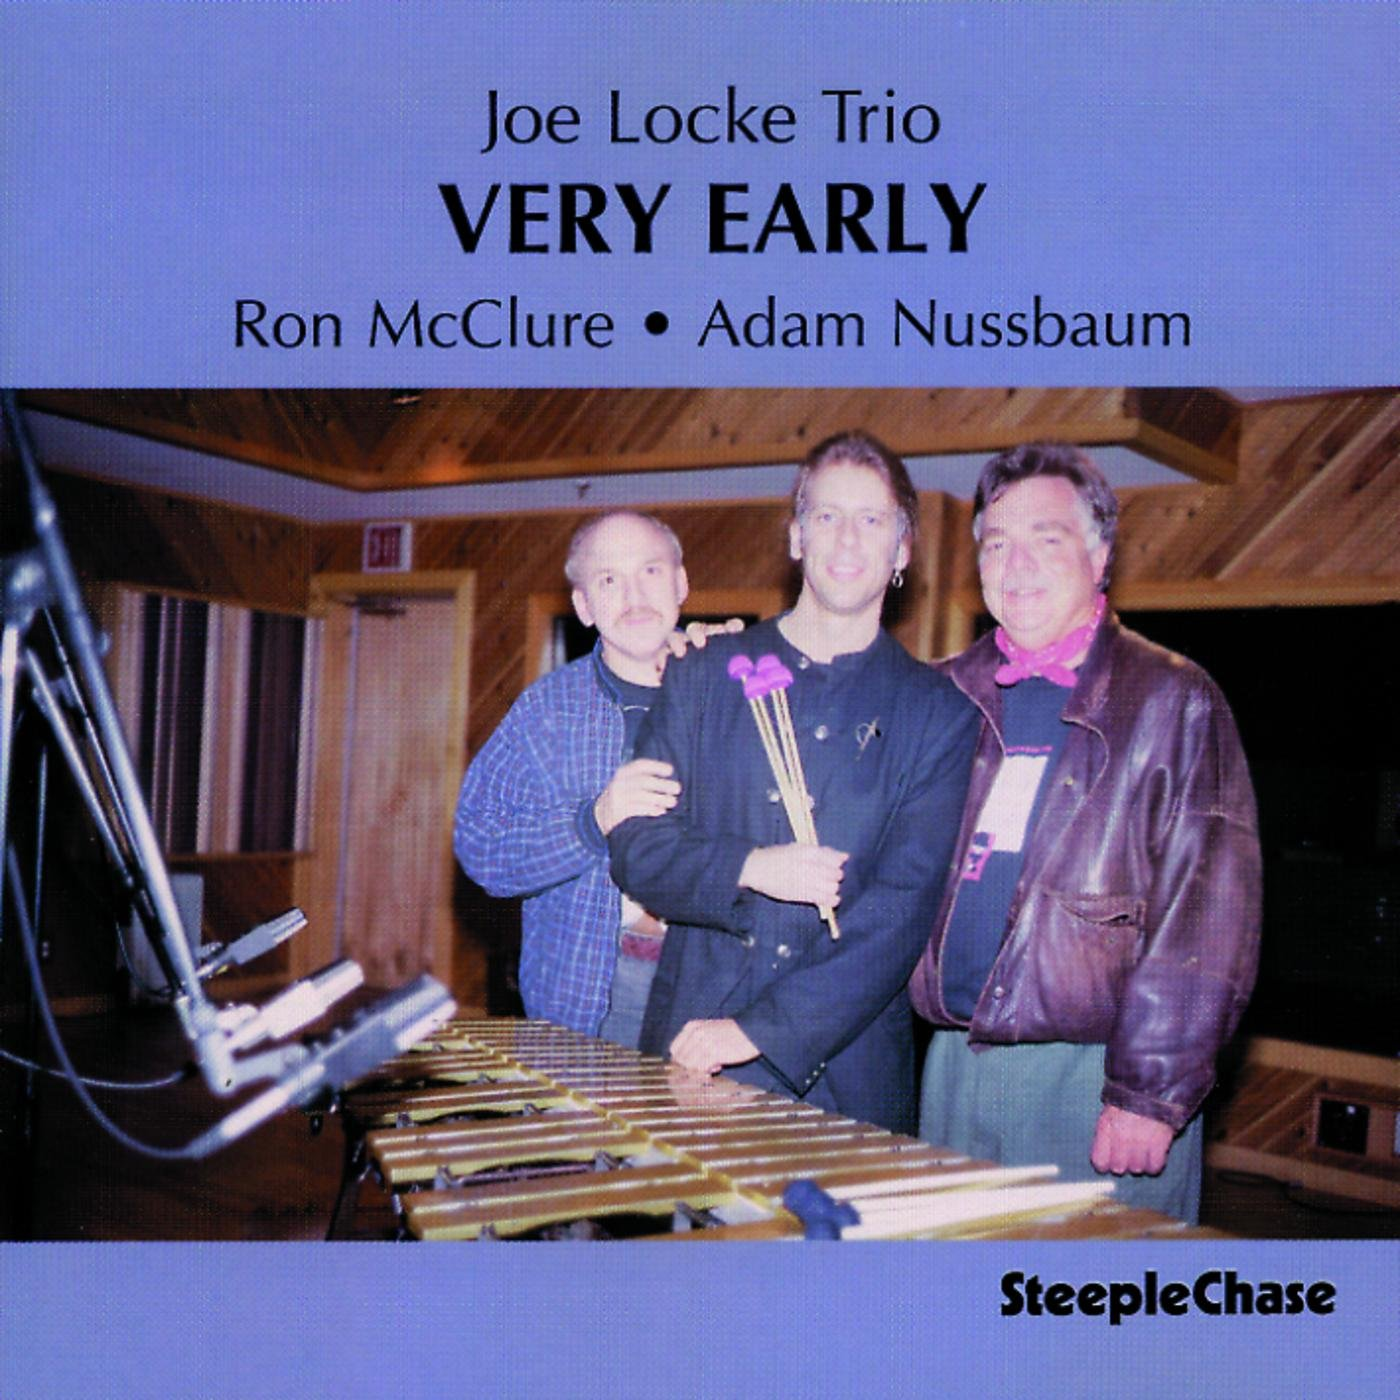 Joe Locke Trio - Very Early